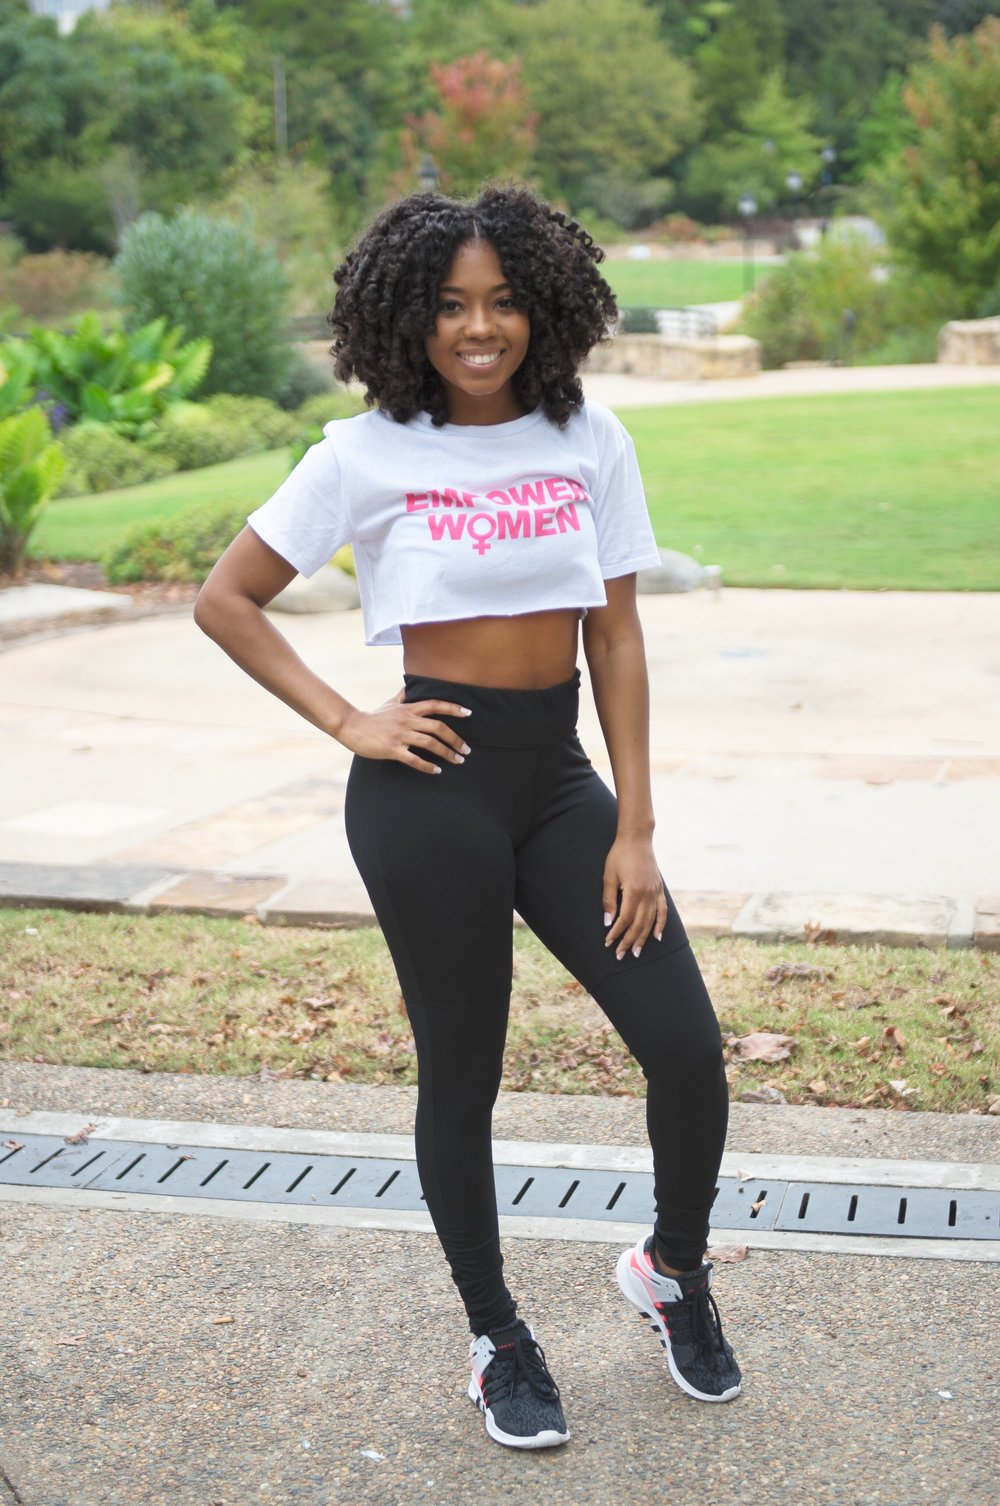 Fitness Lifestyle Blog Just Being Britt JustBeingBritt Flexi Rod Set ORS Empower Women